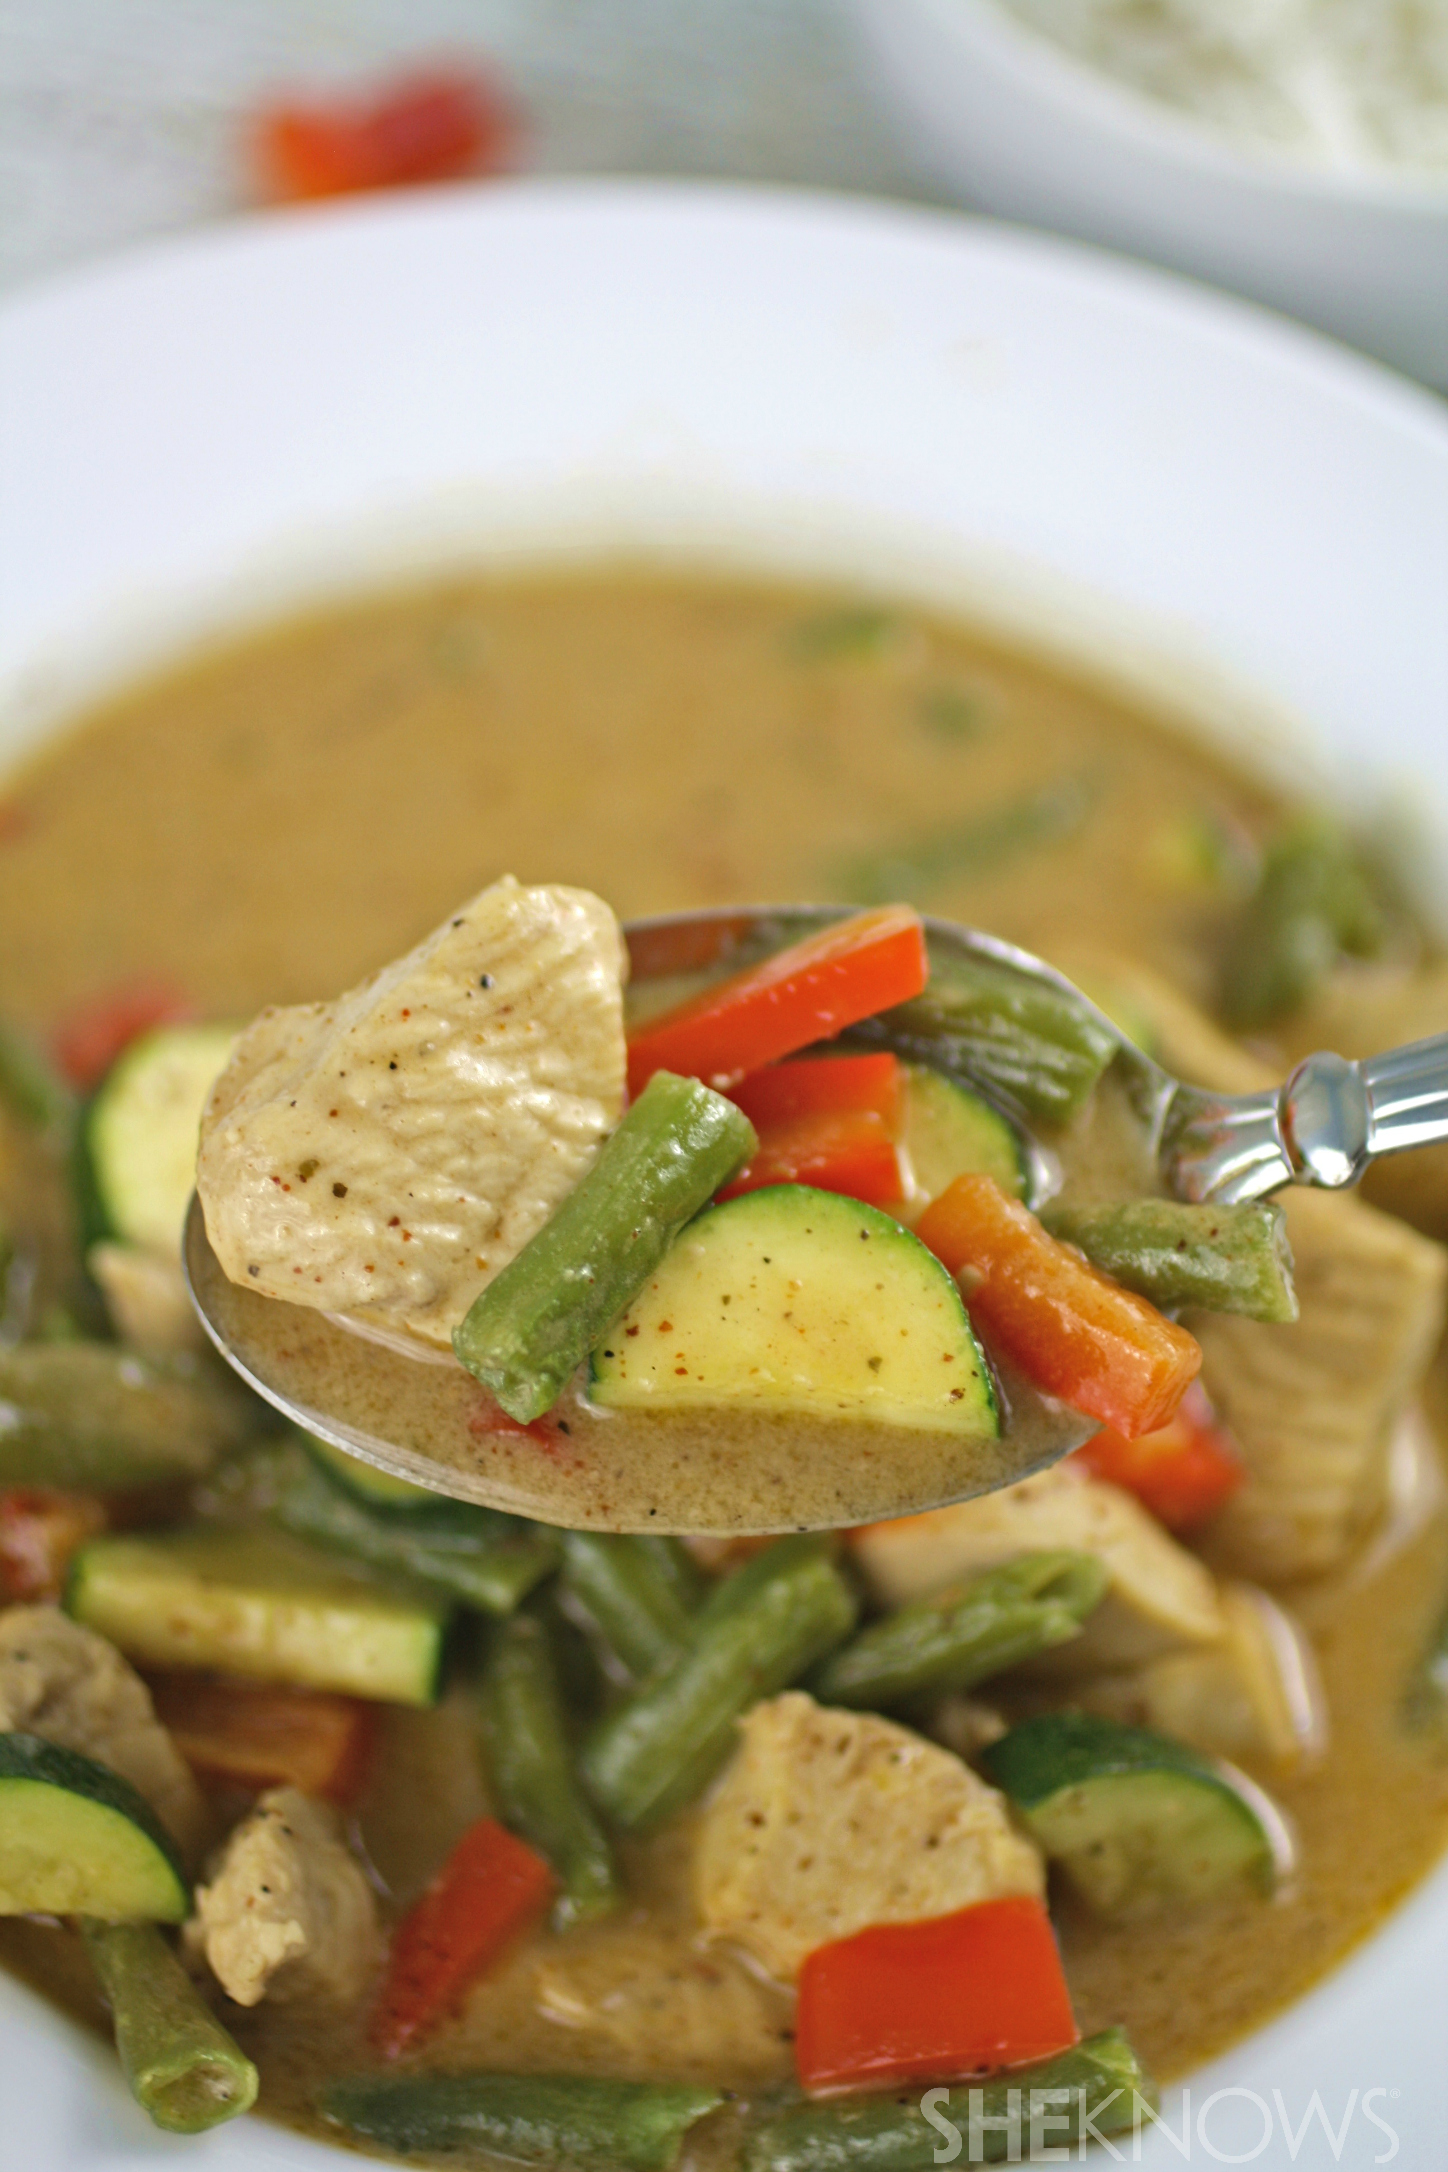 Dig into this meal: Panang curry with chicken is rich and flavorful